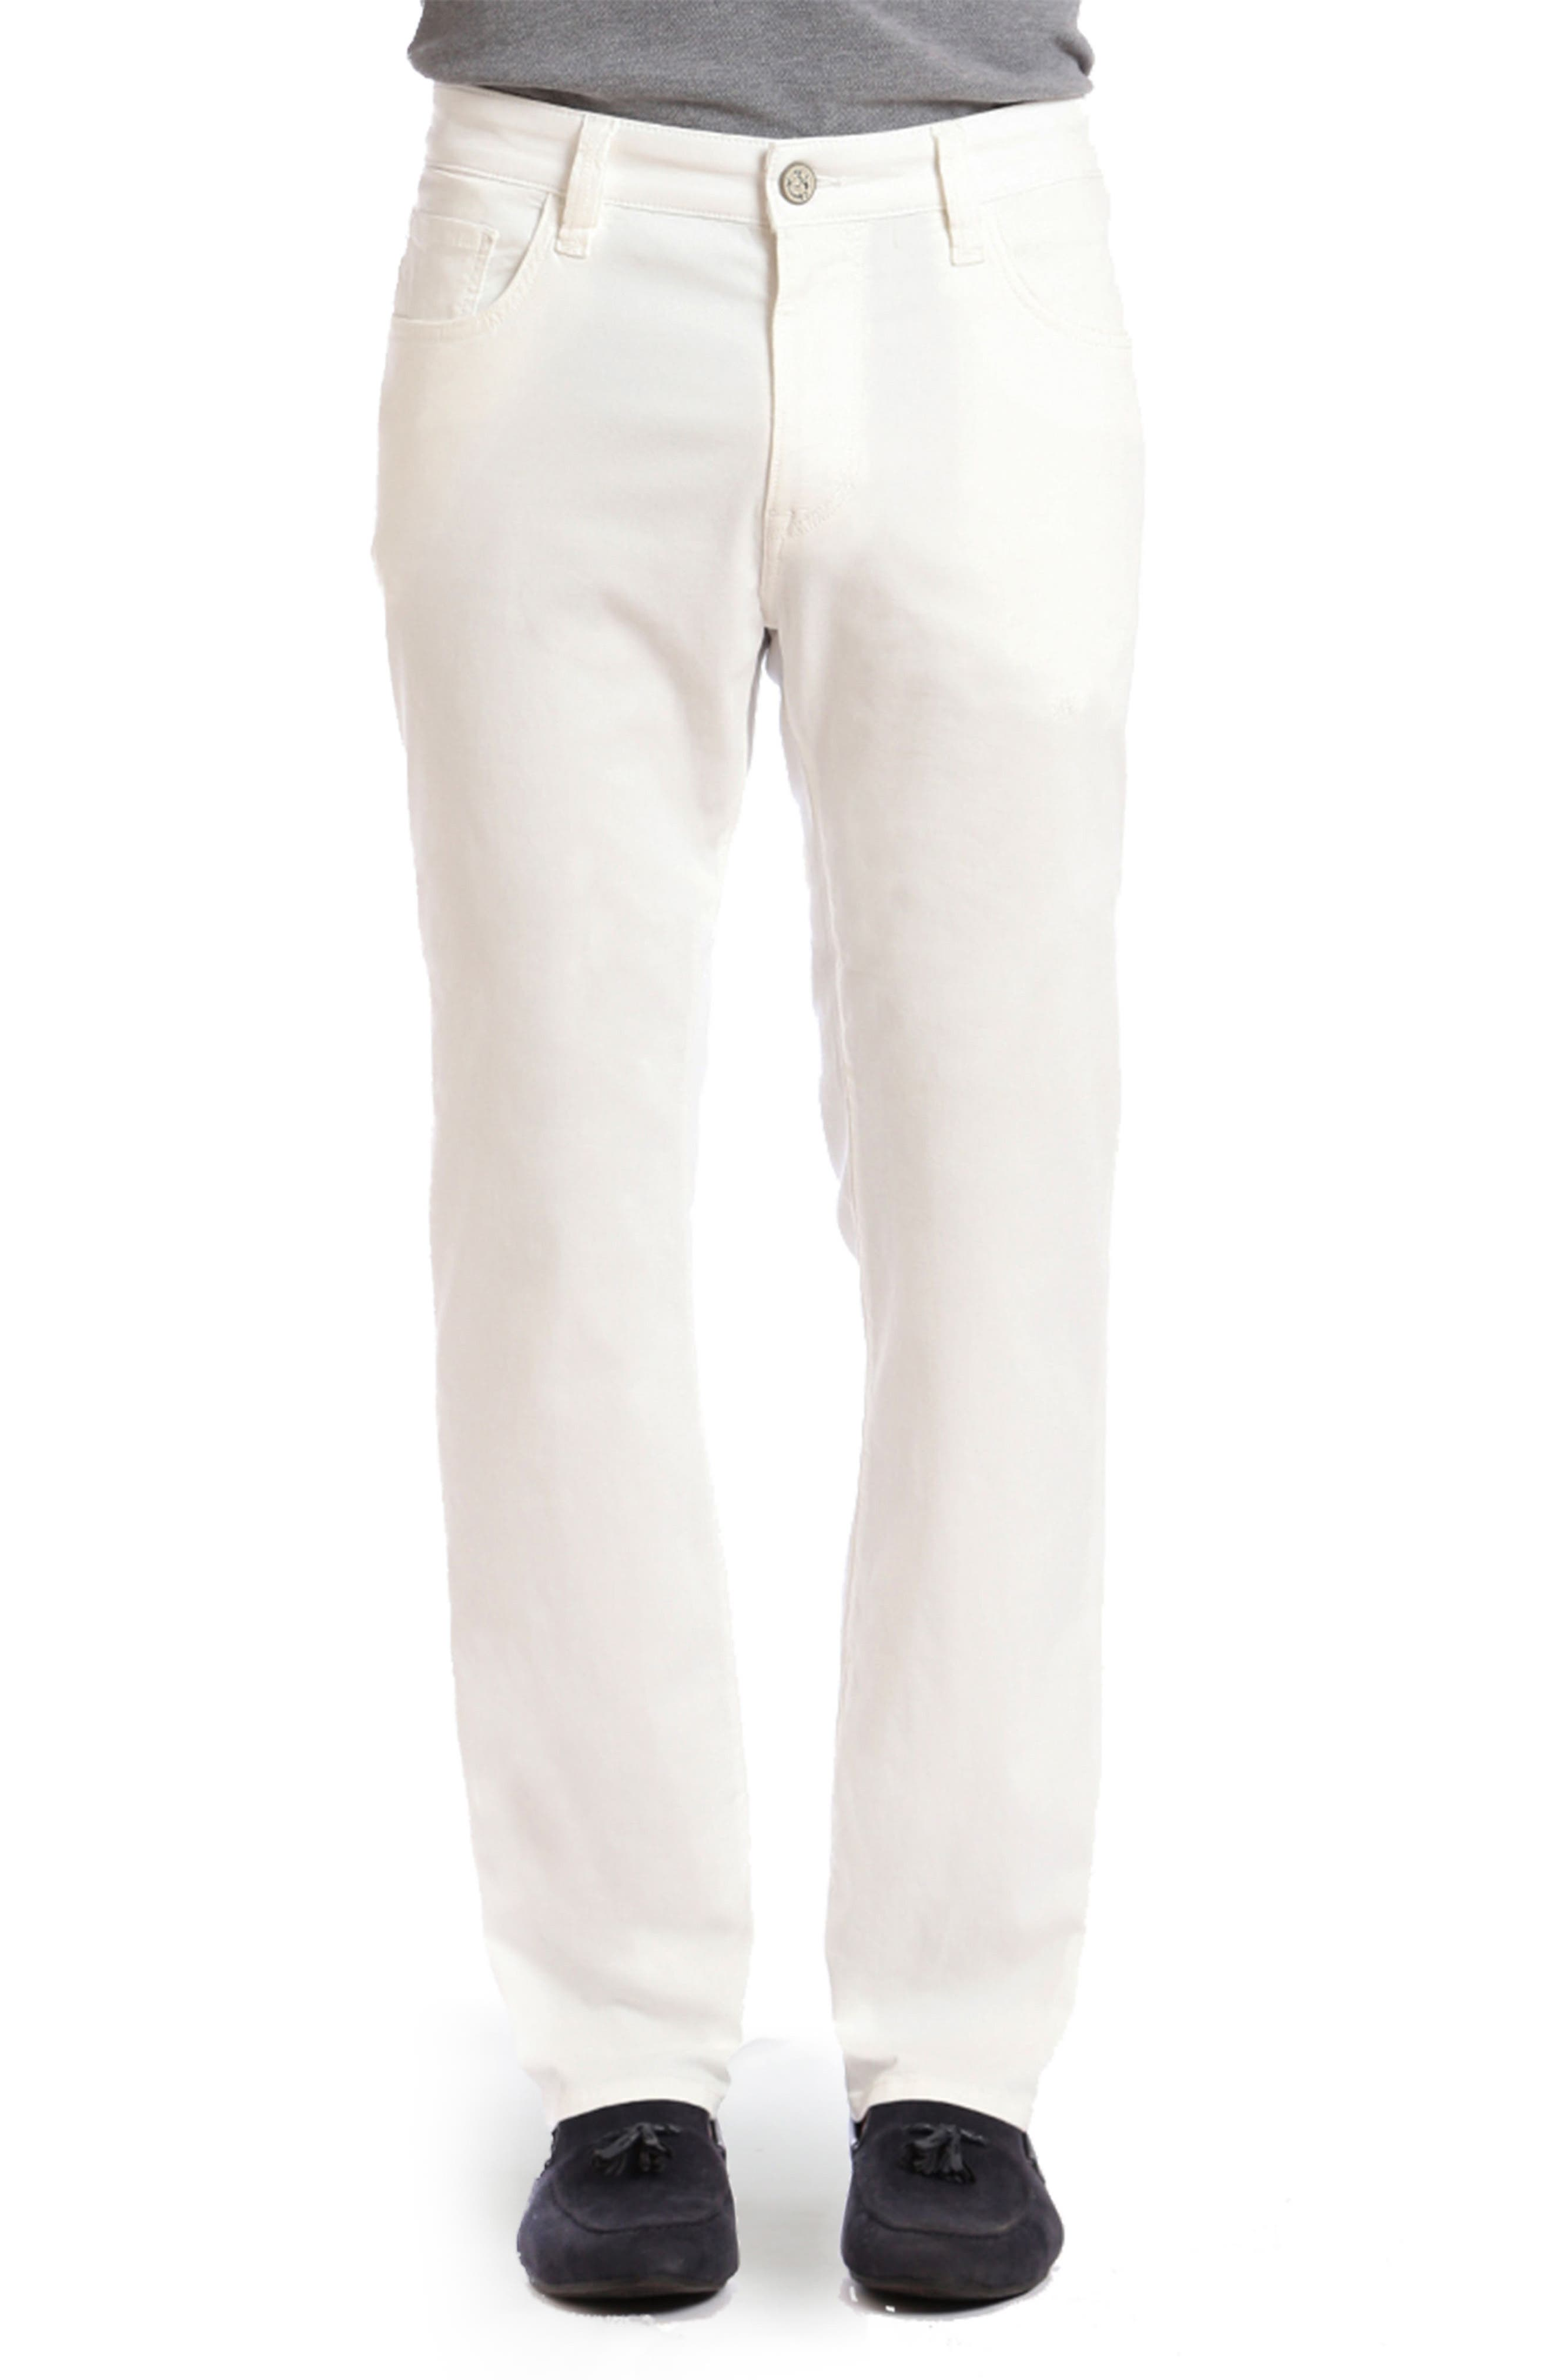 Charisma Relaxed Fit Jeans,                         Main,                         color, Natural Fine Twill